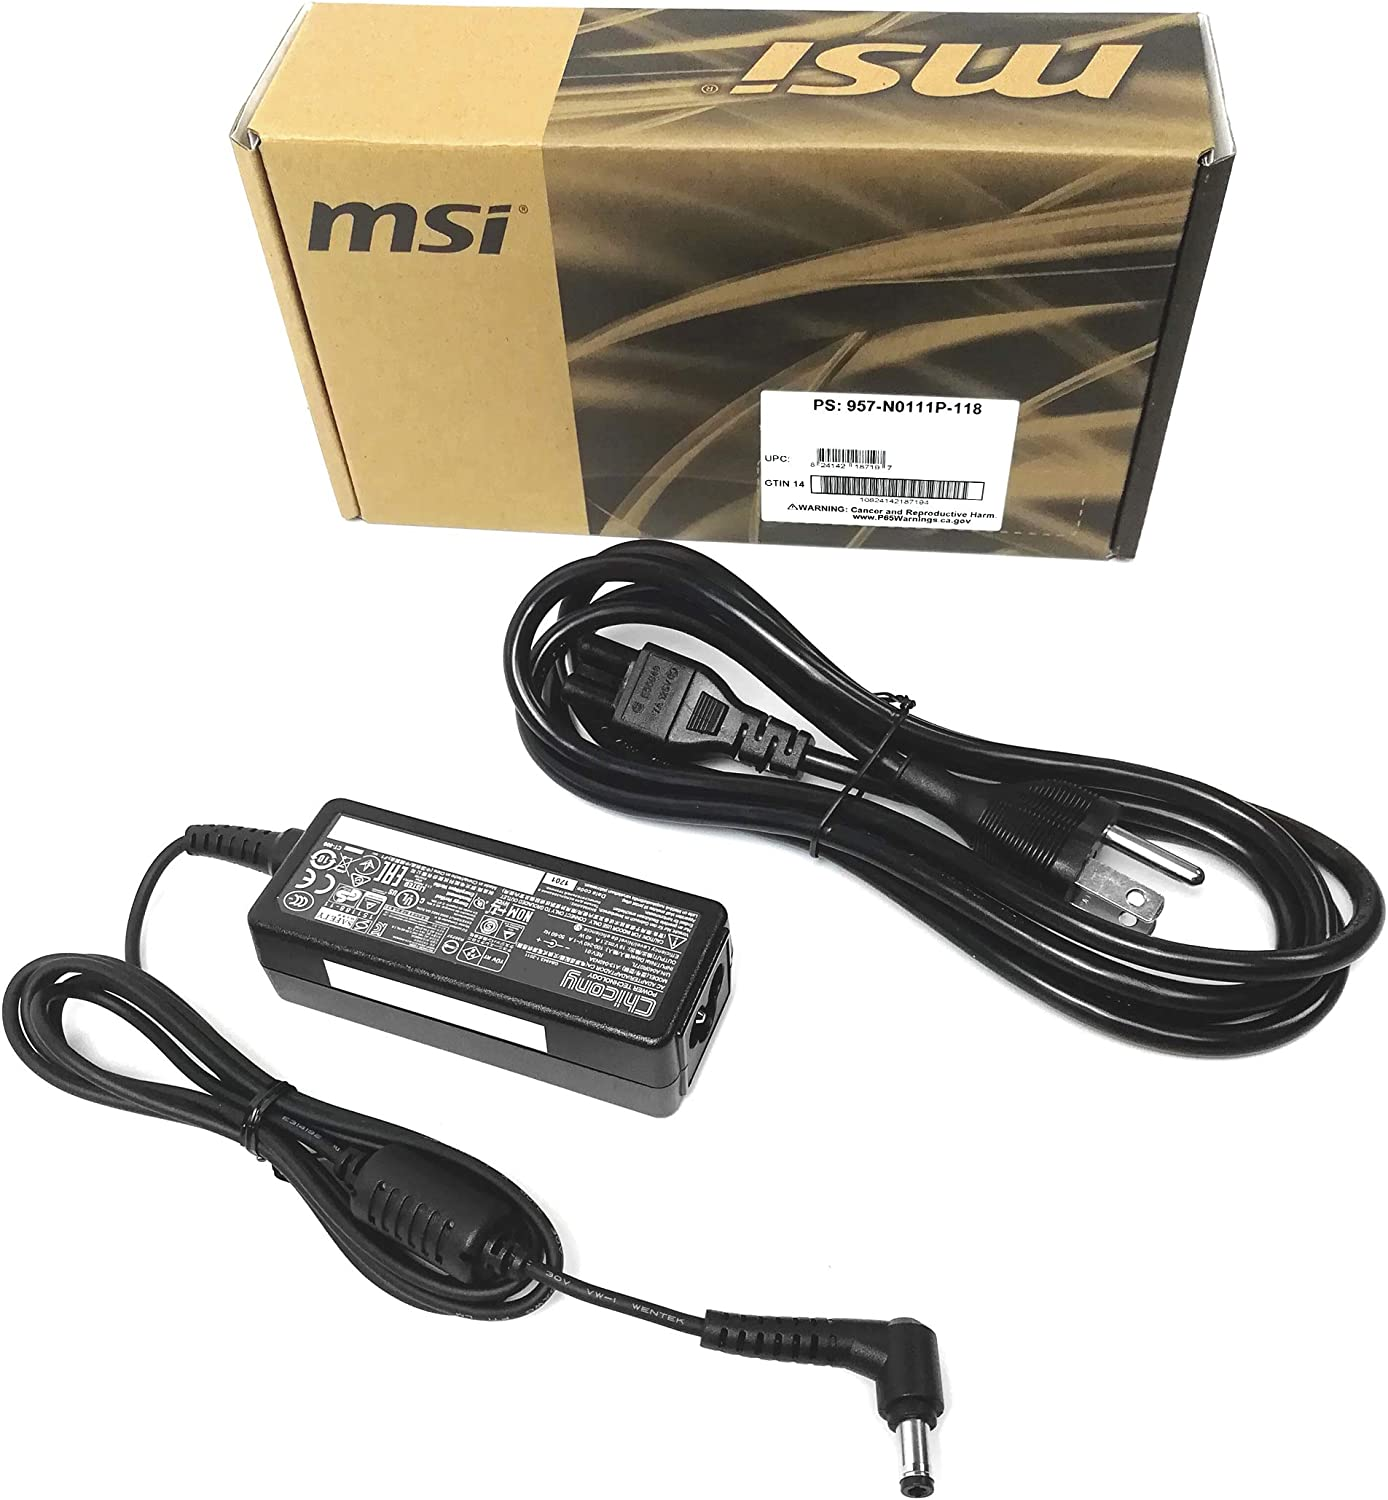 Genuine 40W AC/DC Power Adapter (957-N0111P-118) for MSI PS42 (UMA only) Laptops